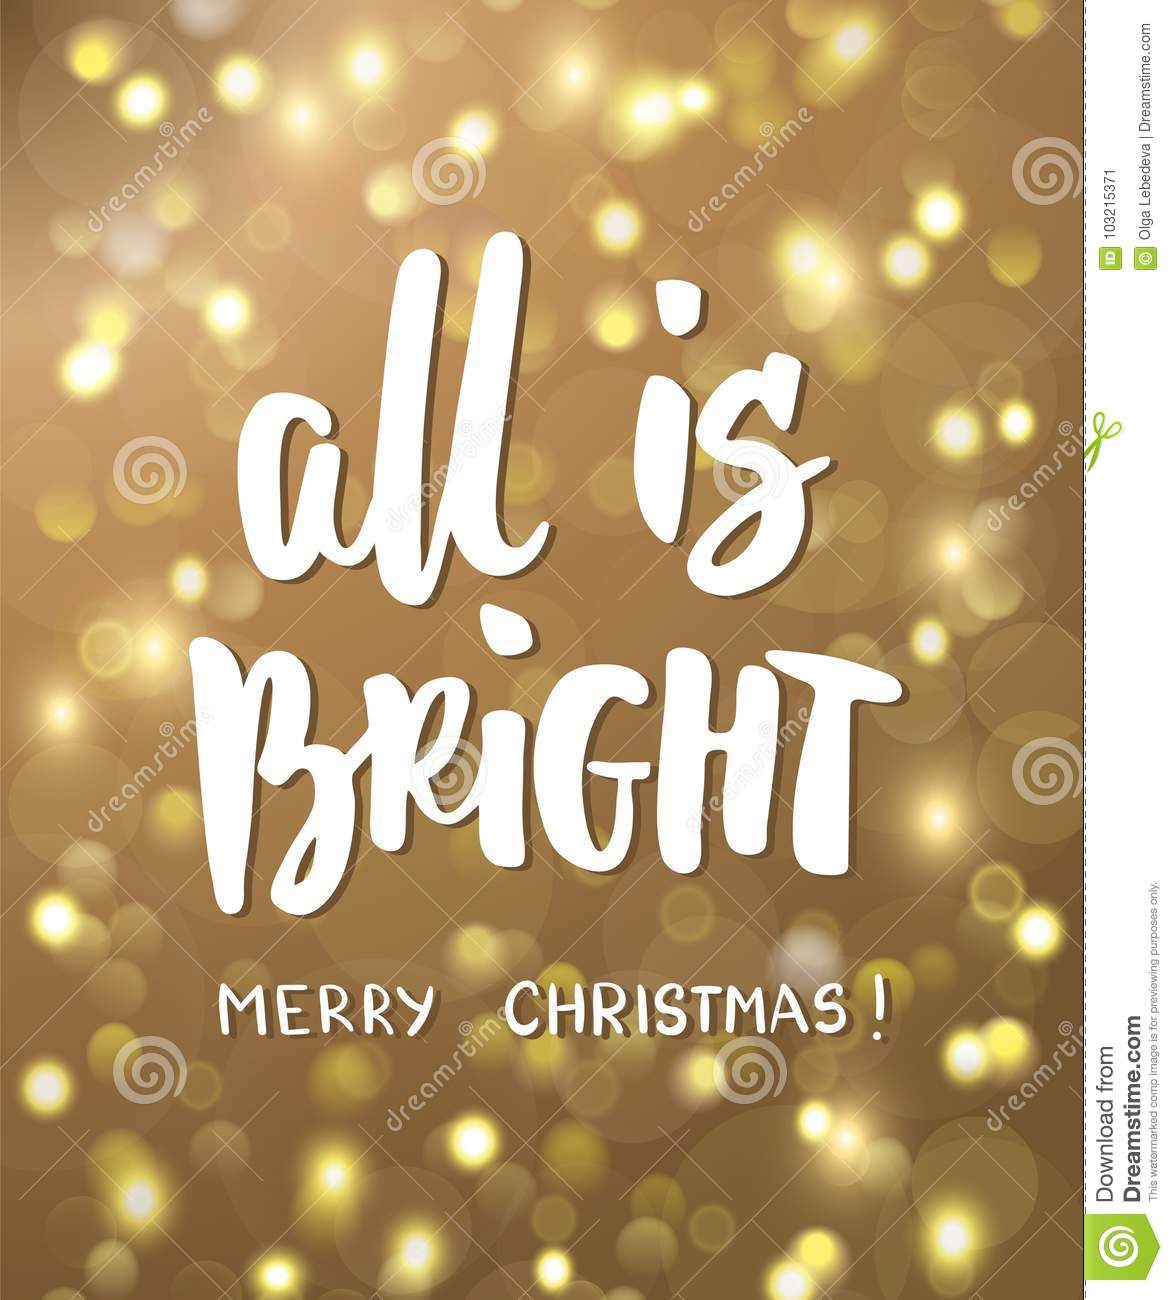 All is bright merry christmas text golden glowing lights download all is bright merry christmas text golden glowing lights background holiday greetings m4hsunfo